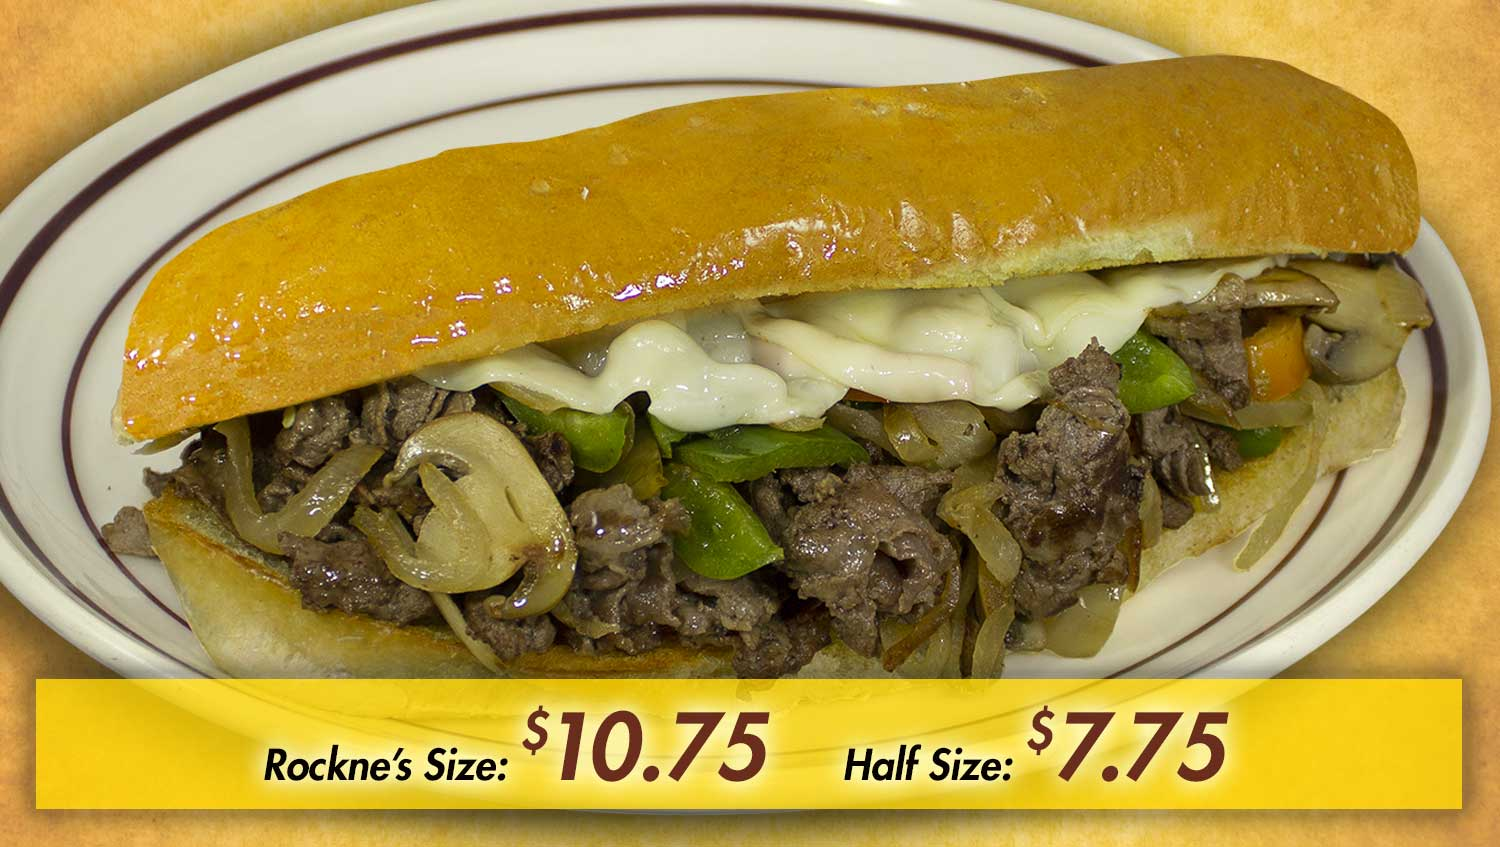 Rockne's Sandwich Menu Item